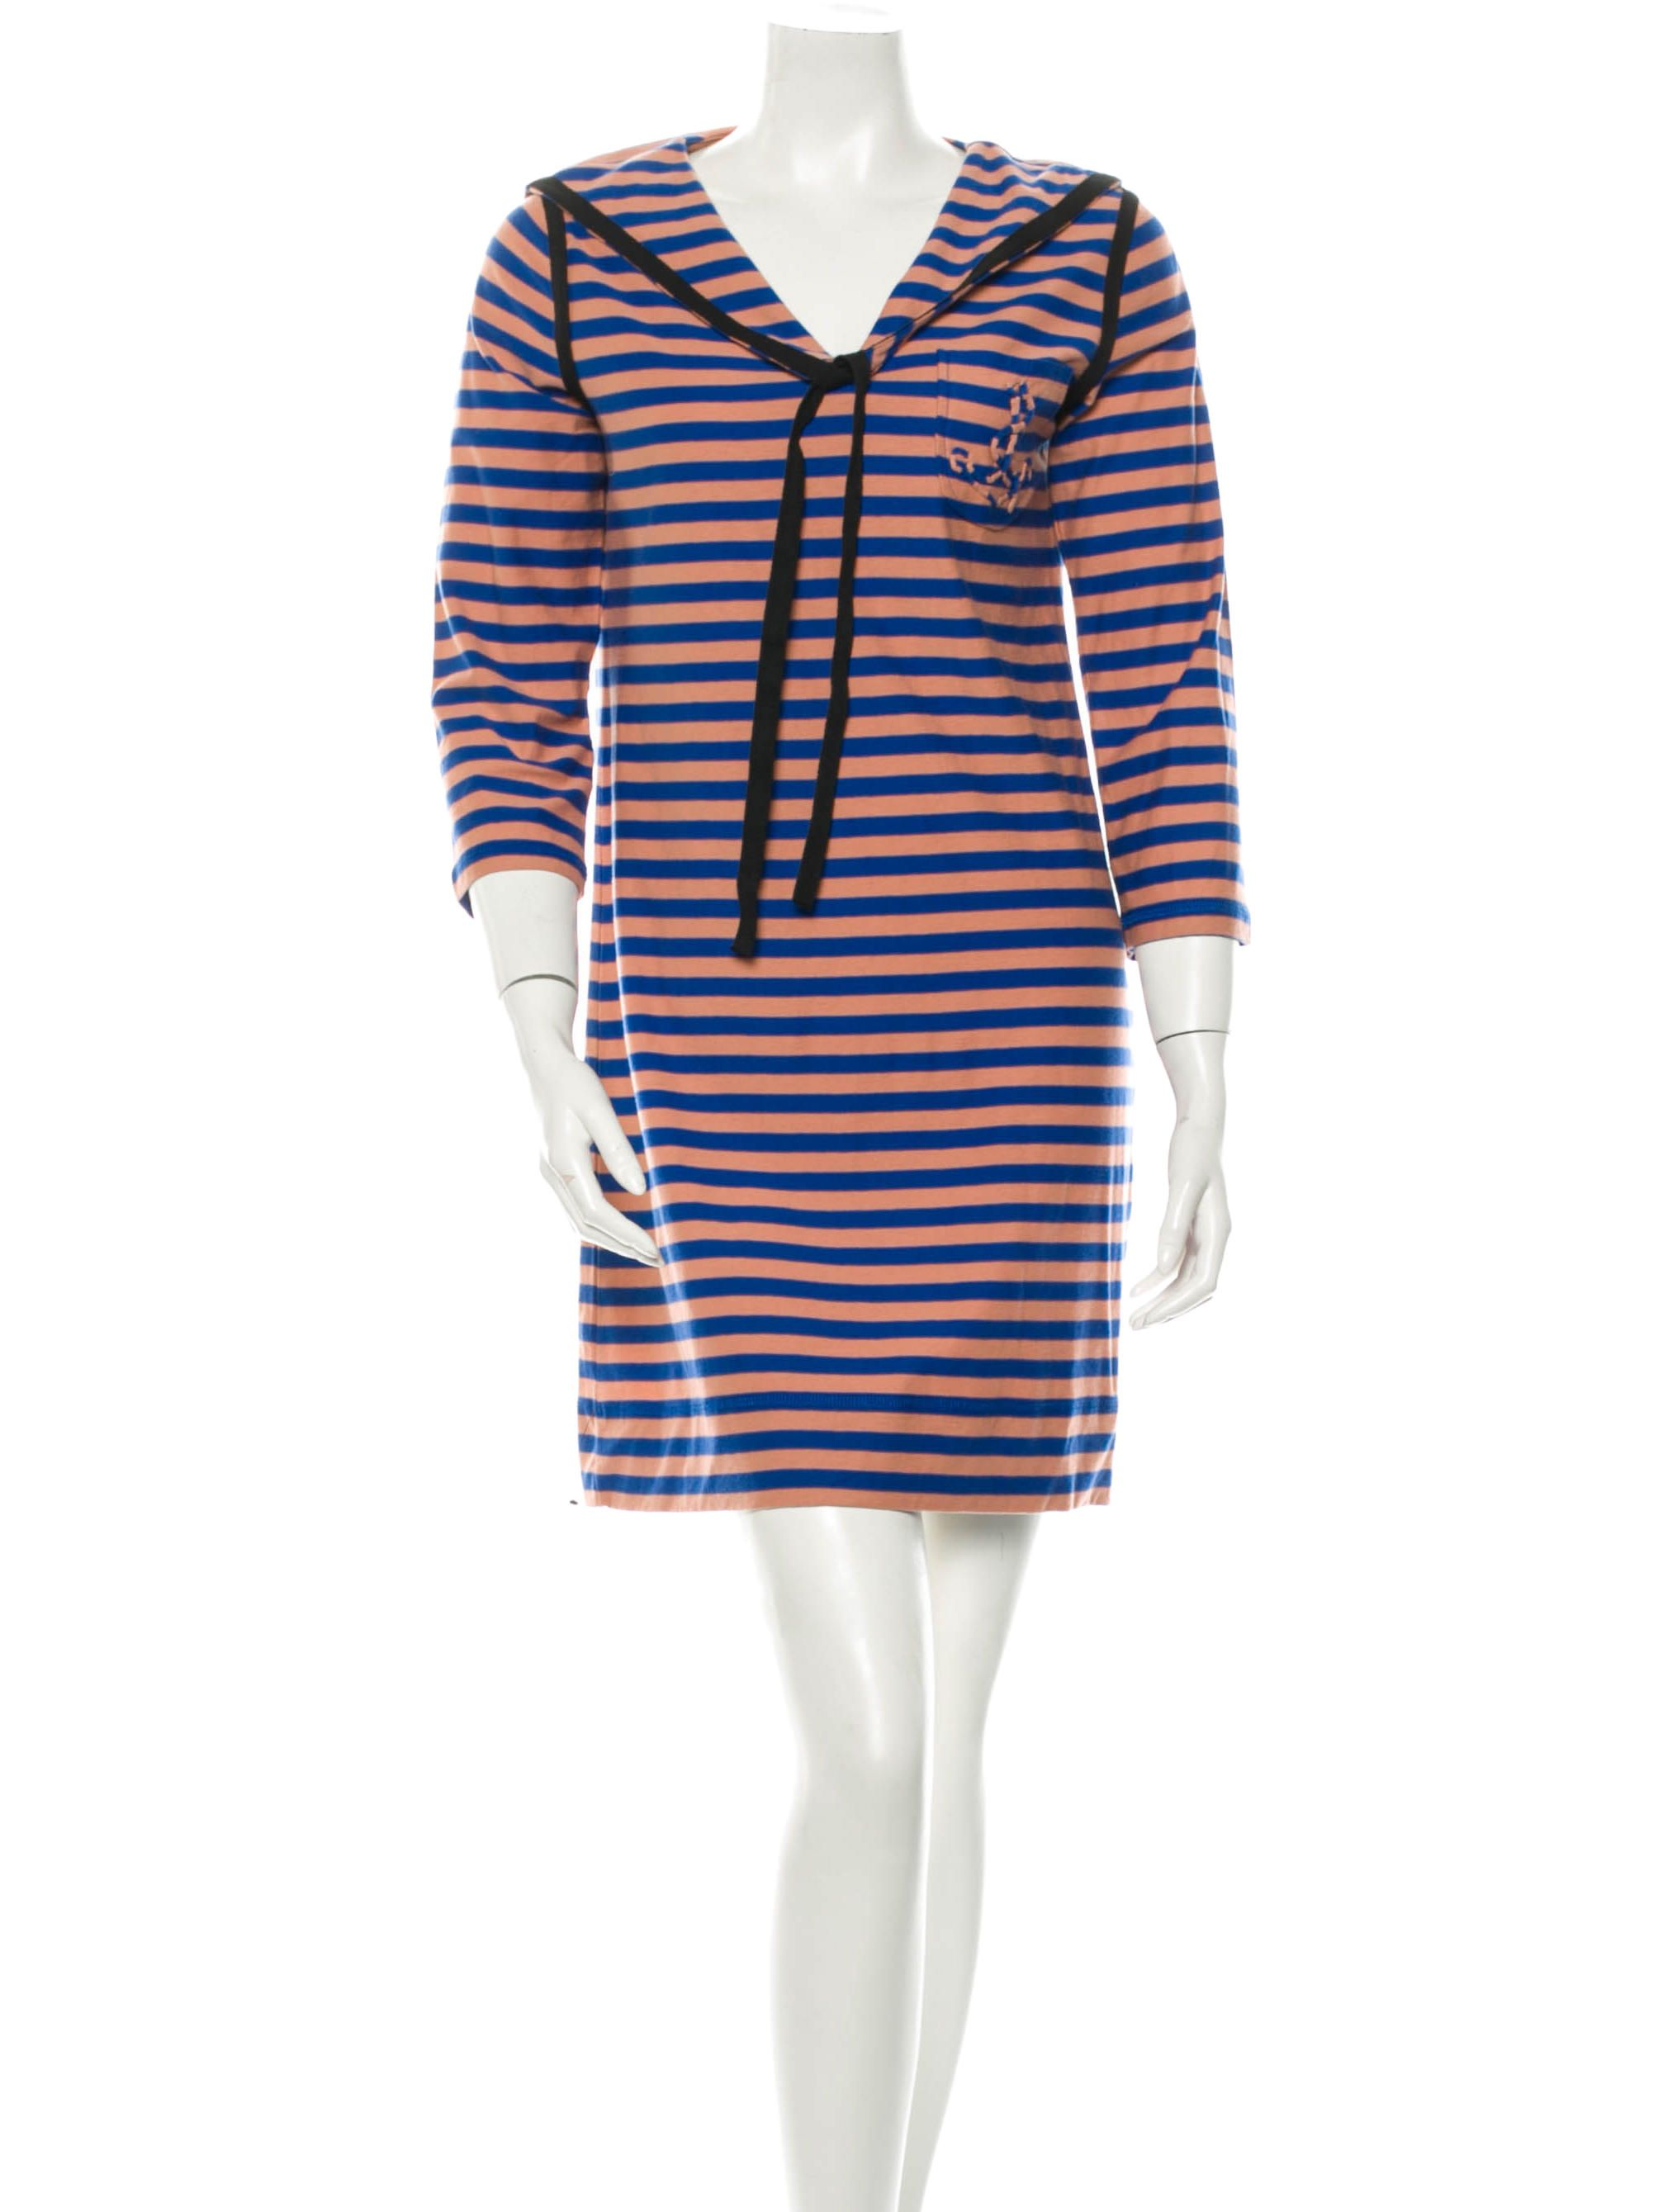 6b00f4fa82 Blue and peach Sonia by Sonia Rykiel striped shift dress with sailor  collar, slip pocket